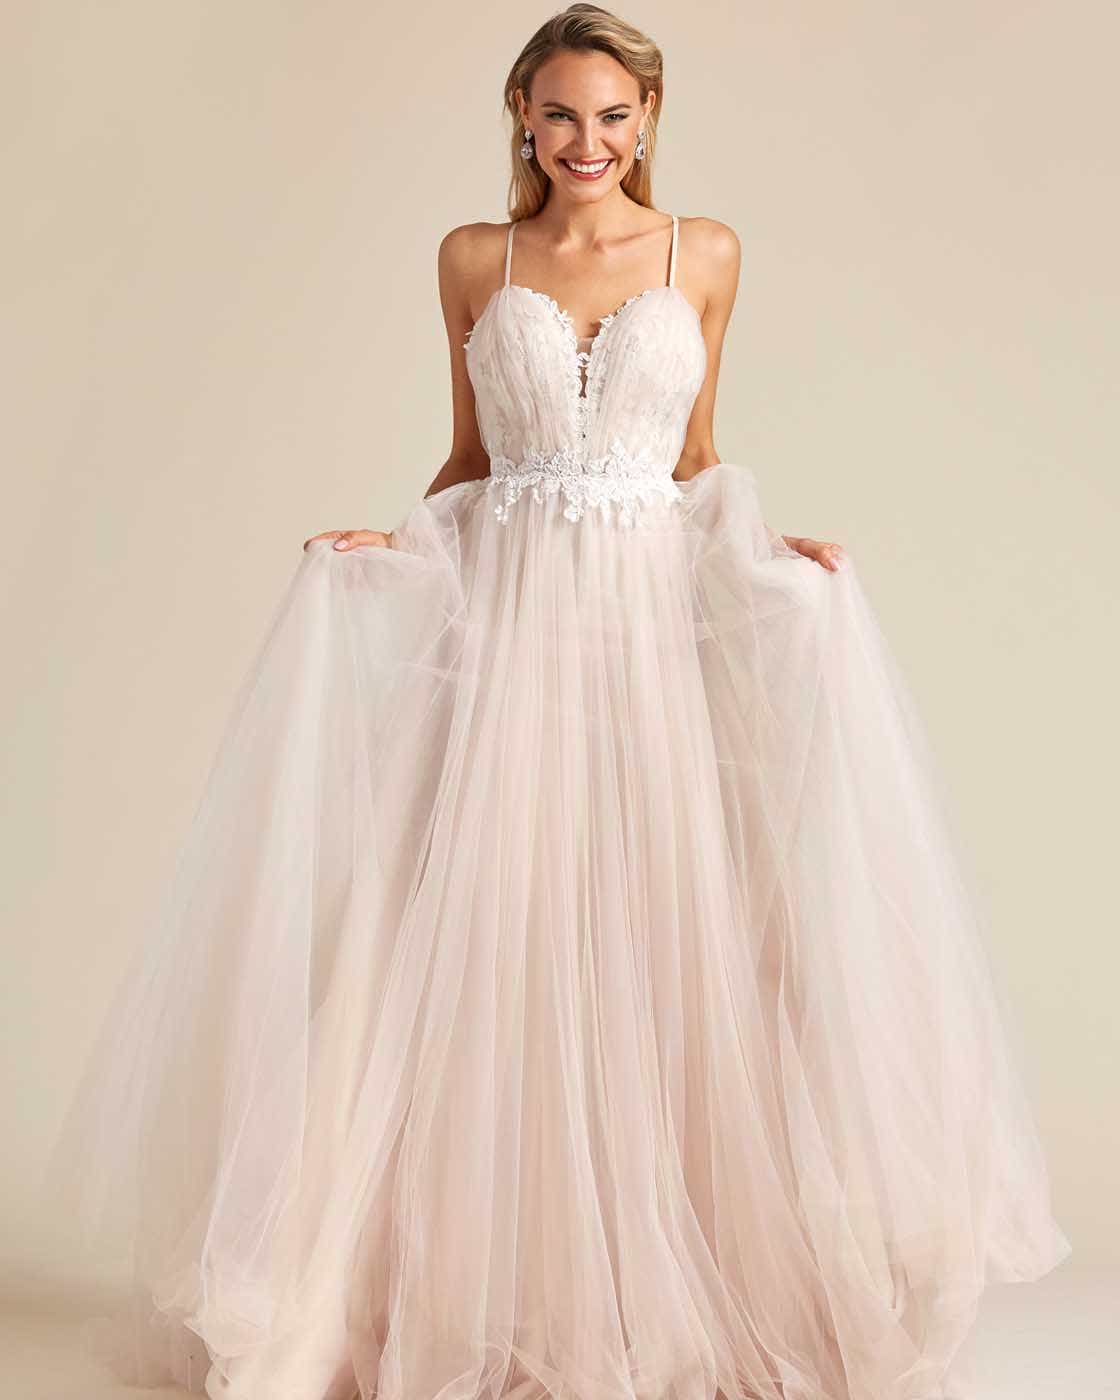 Champagne White Embroidery Long Length Wedding Gown - Front